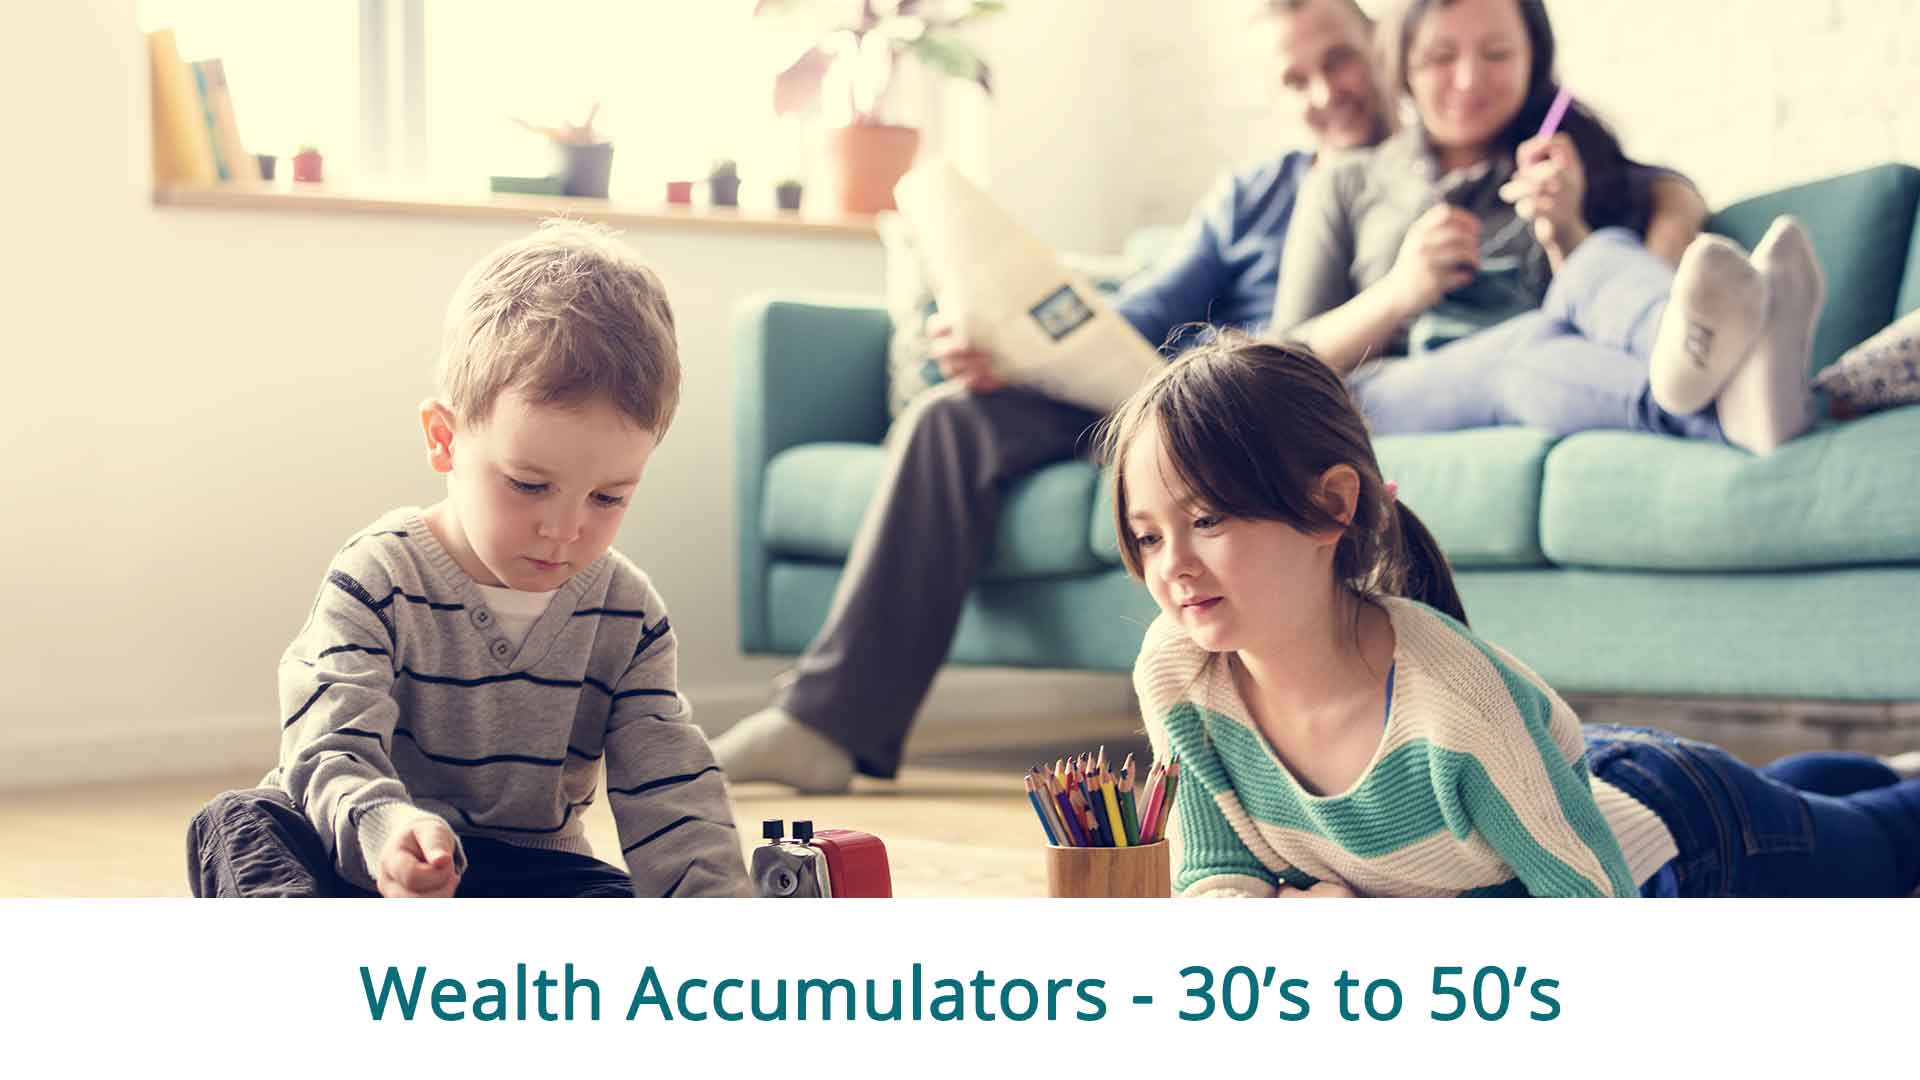 Murray-Mallee-Financial-Planning-Life-Stage-2-Wealth-Accumulators-30s-to-50s